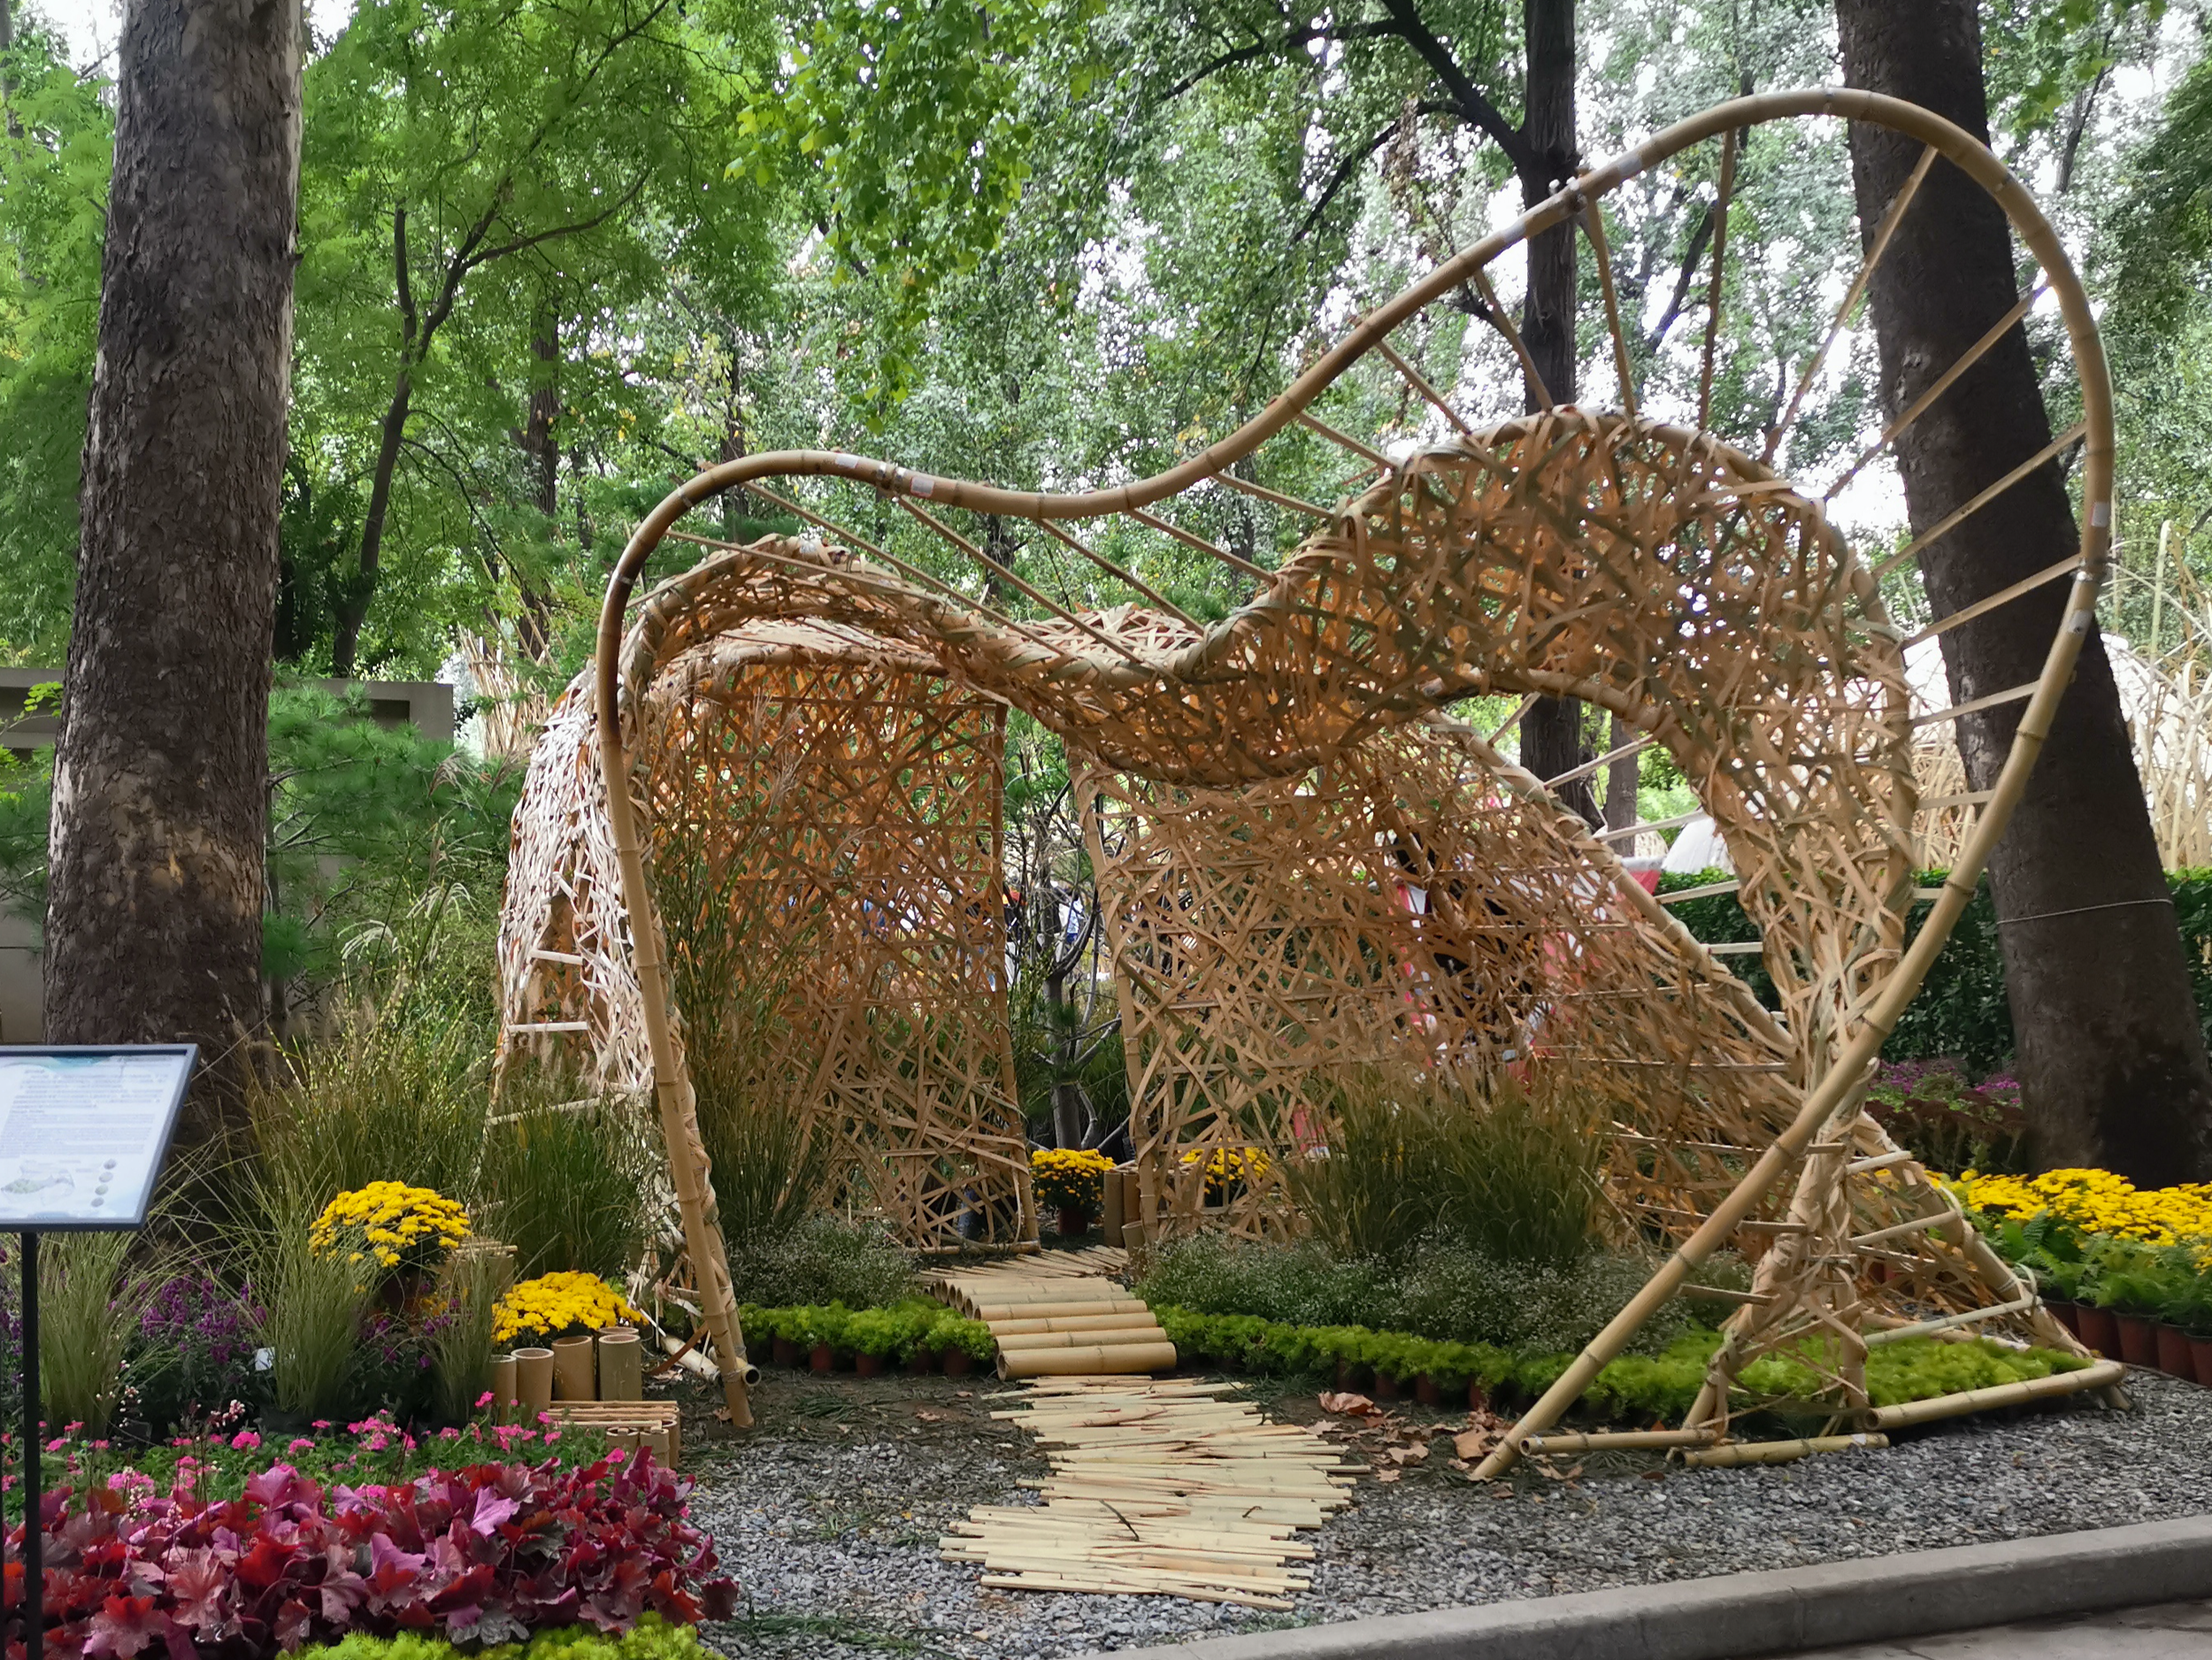 The Garden as designed and built by BLAD students